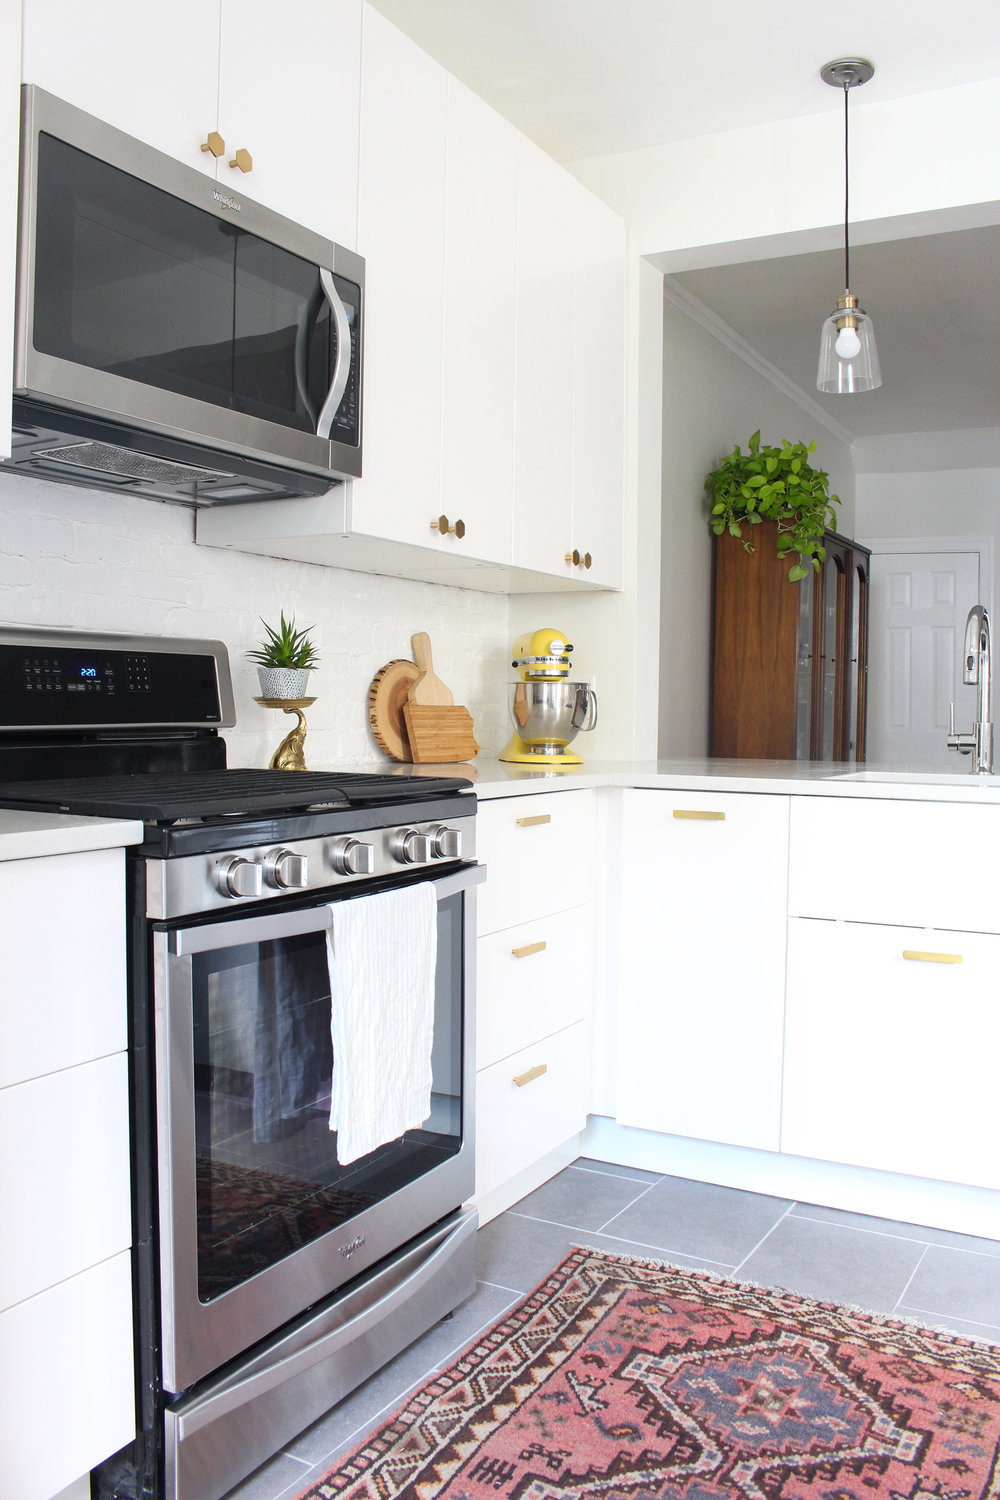 White modern IKEA kitchen, budget-friendly kitchen renovation, vintage rug in kitchen